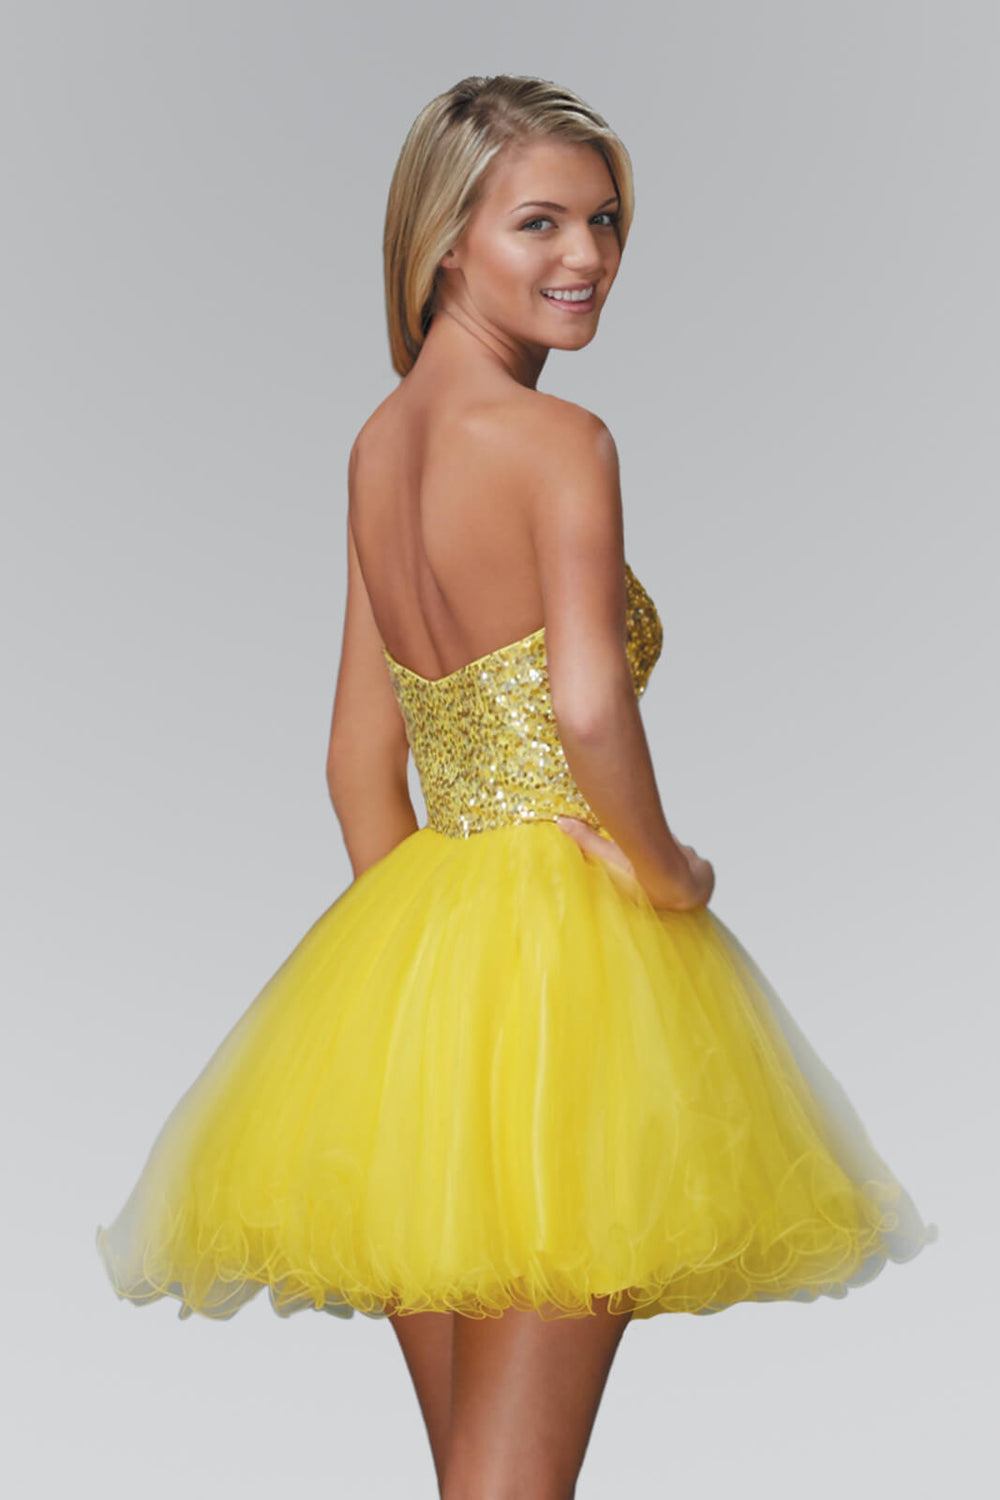 Sweetheart Short Prom Dress Homecoming - The Dress Outlet Yellow